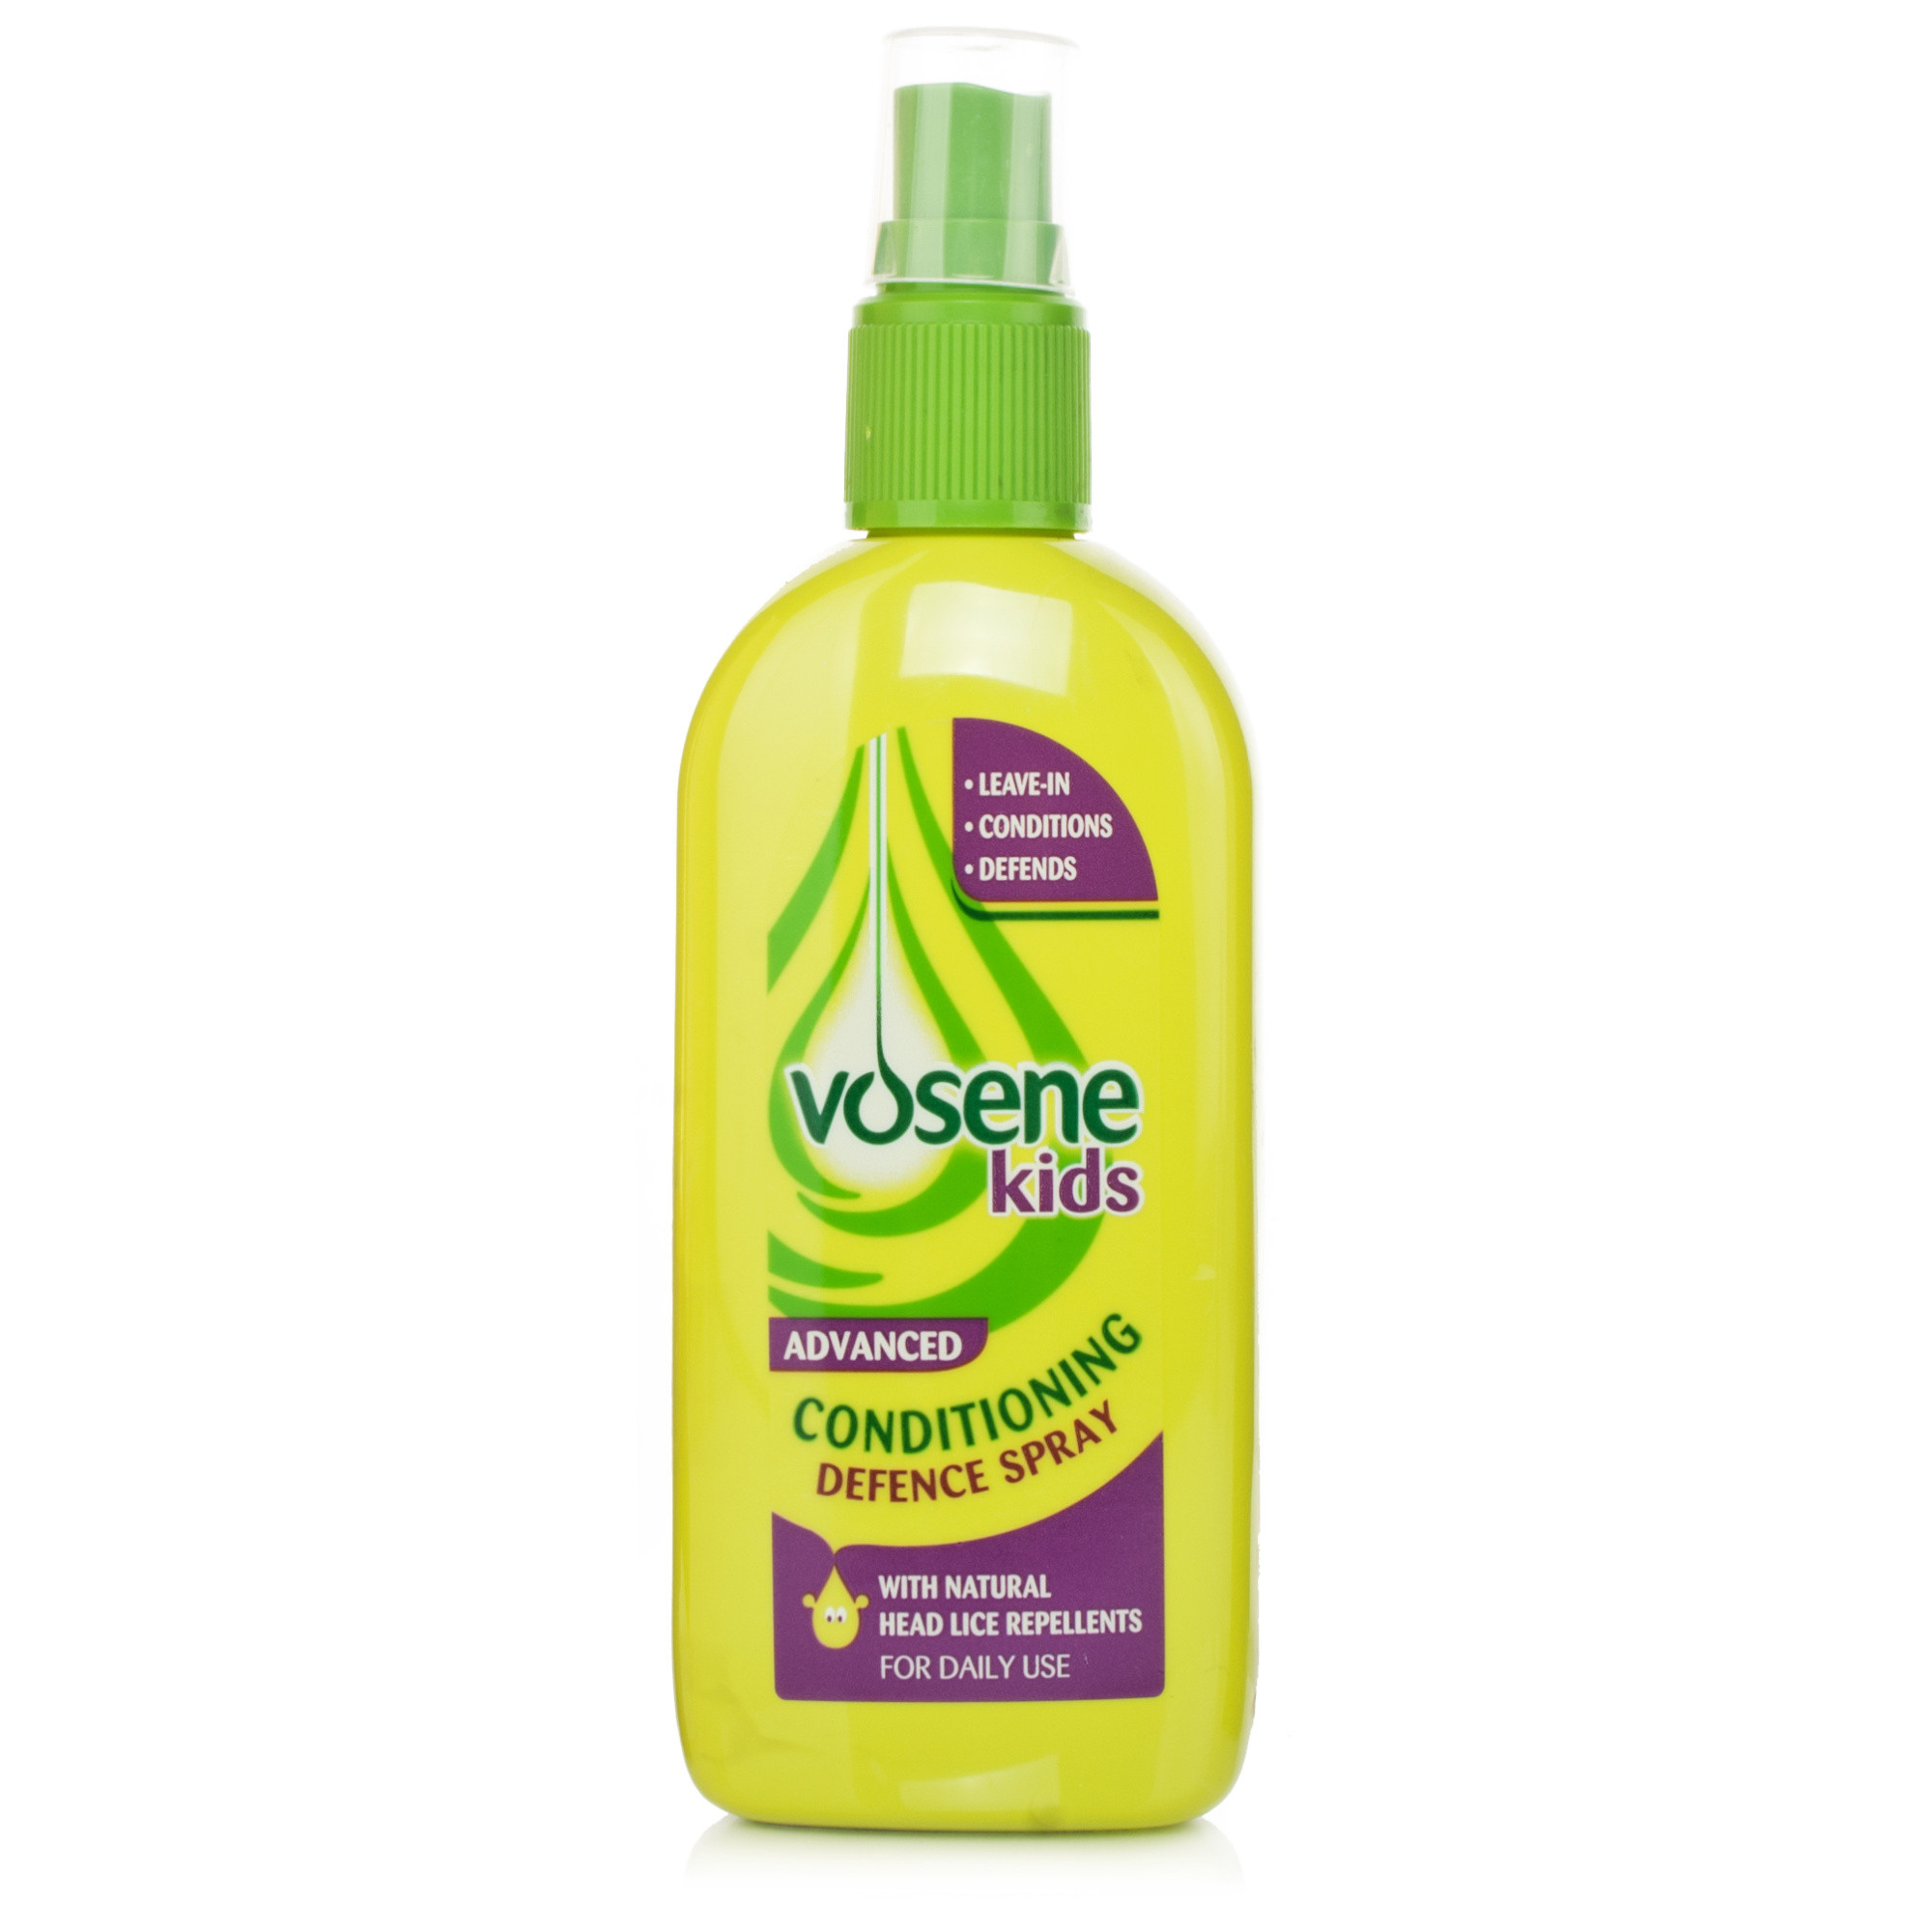 Vosene Kids 3 in 1 Leave-In-Spray Head Lice Repellent